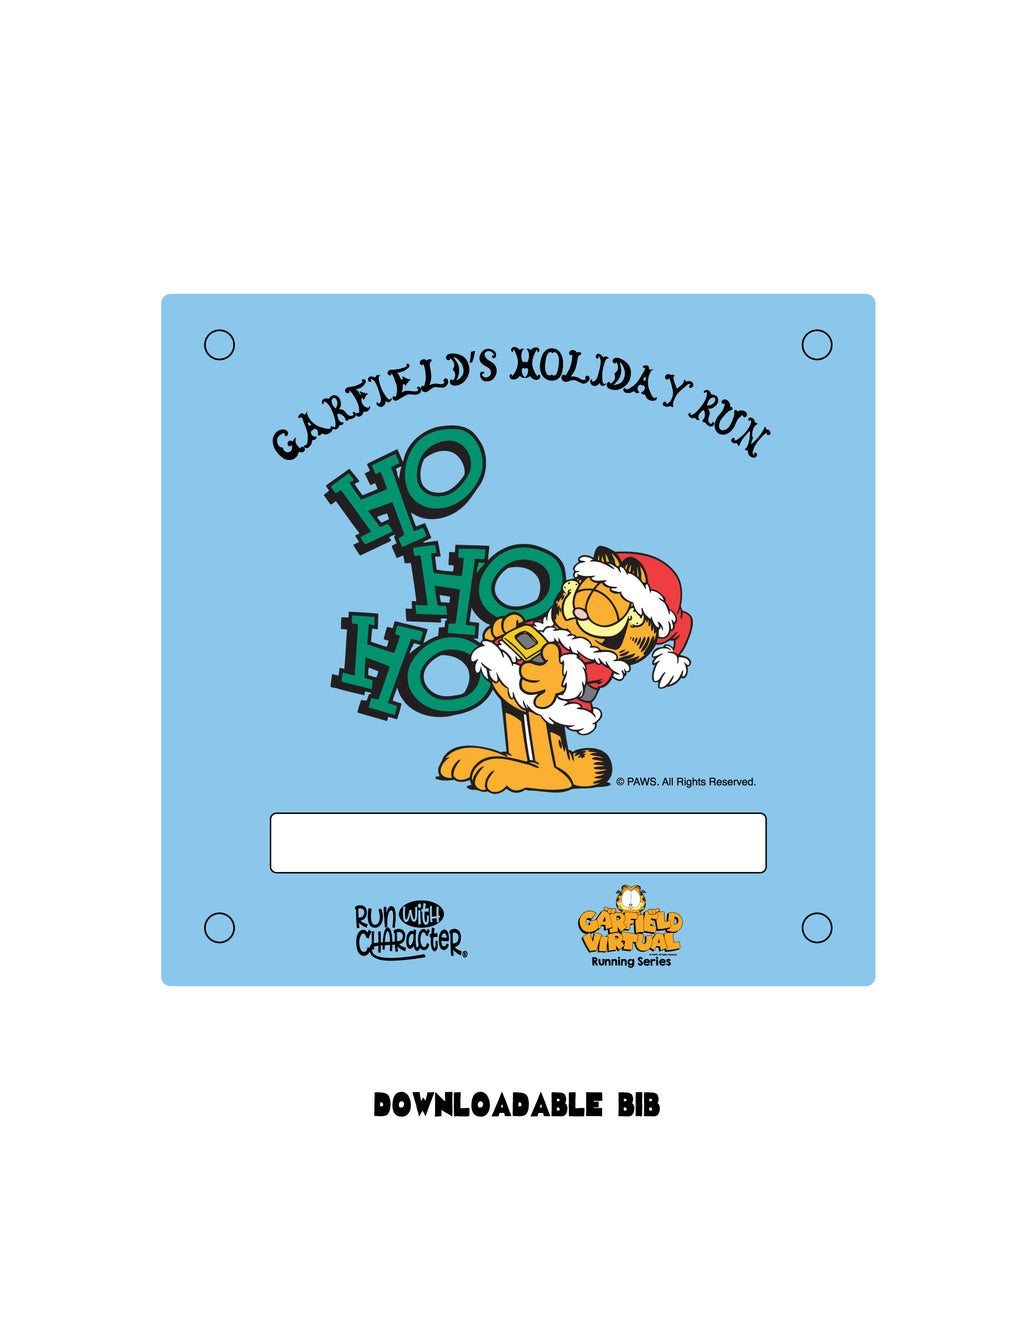 2018 Garfield's Holiday Virtual Run